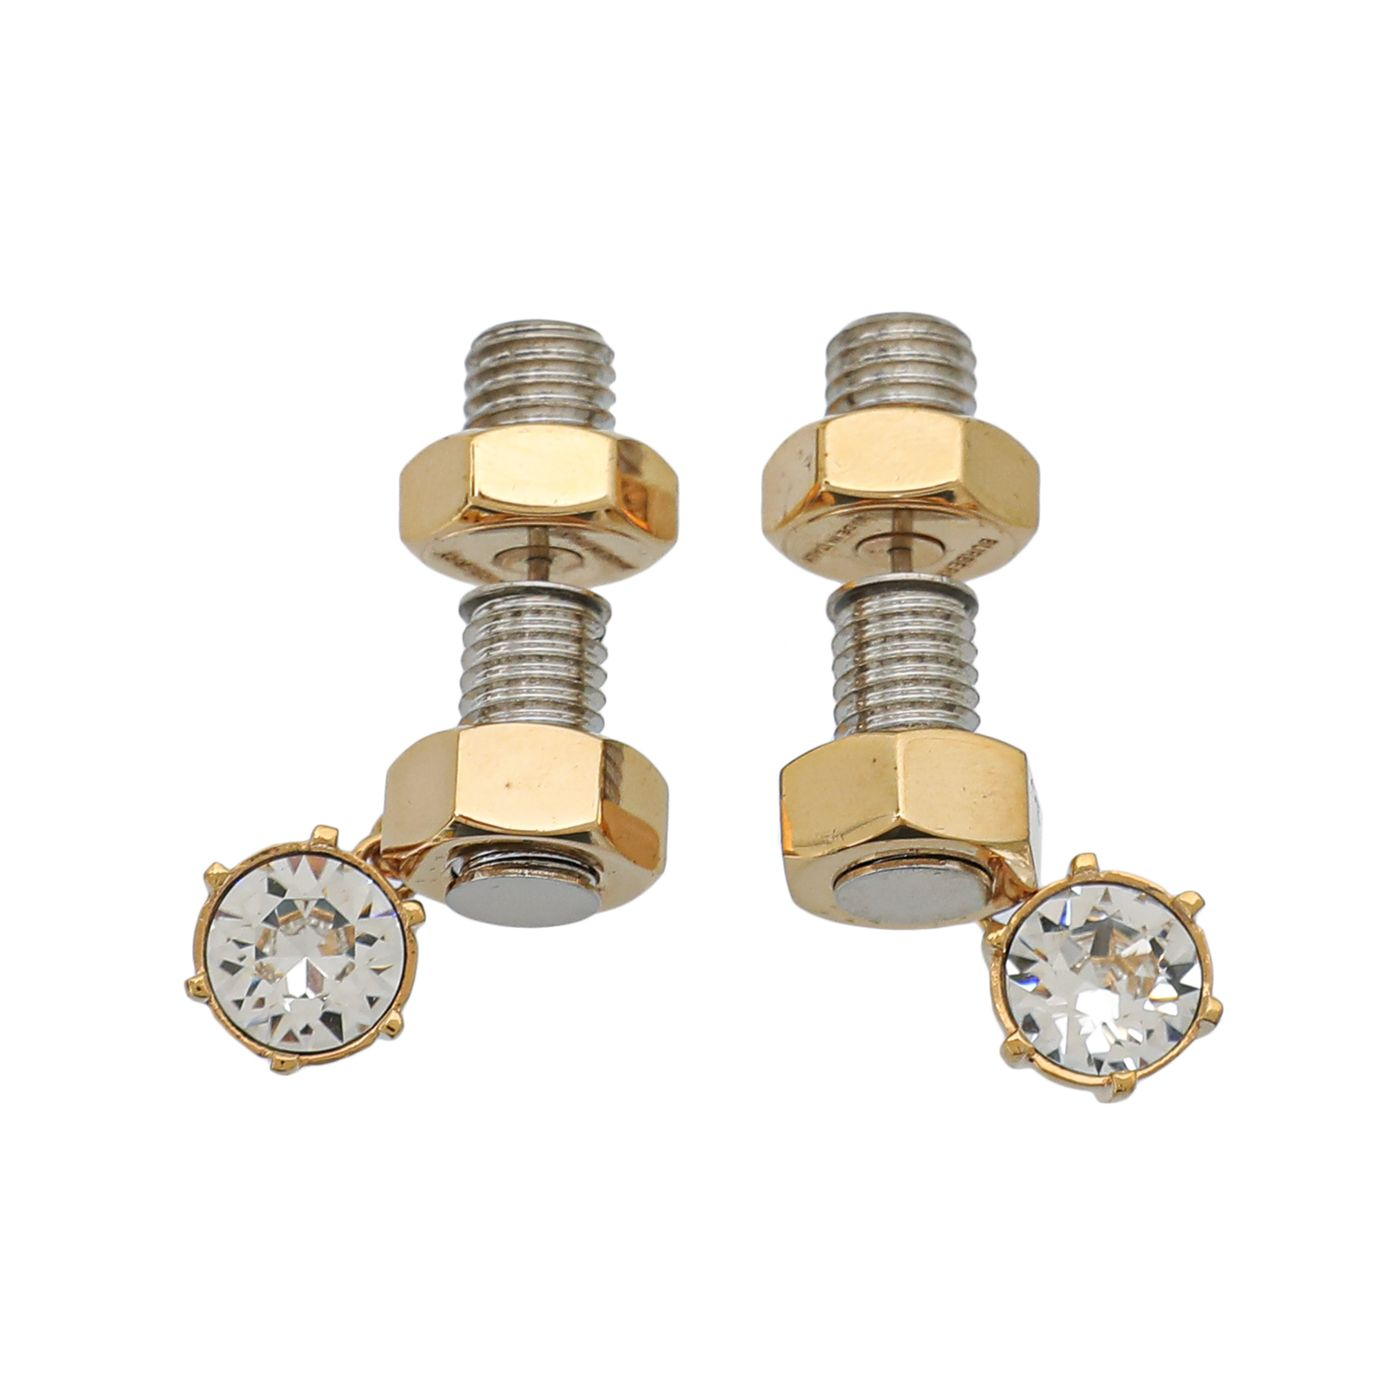 Burberry Nut and Bolt Charm Earrings W/ White Crystal